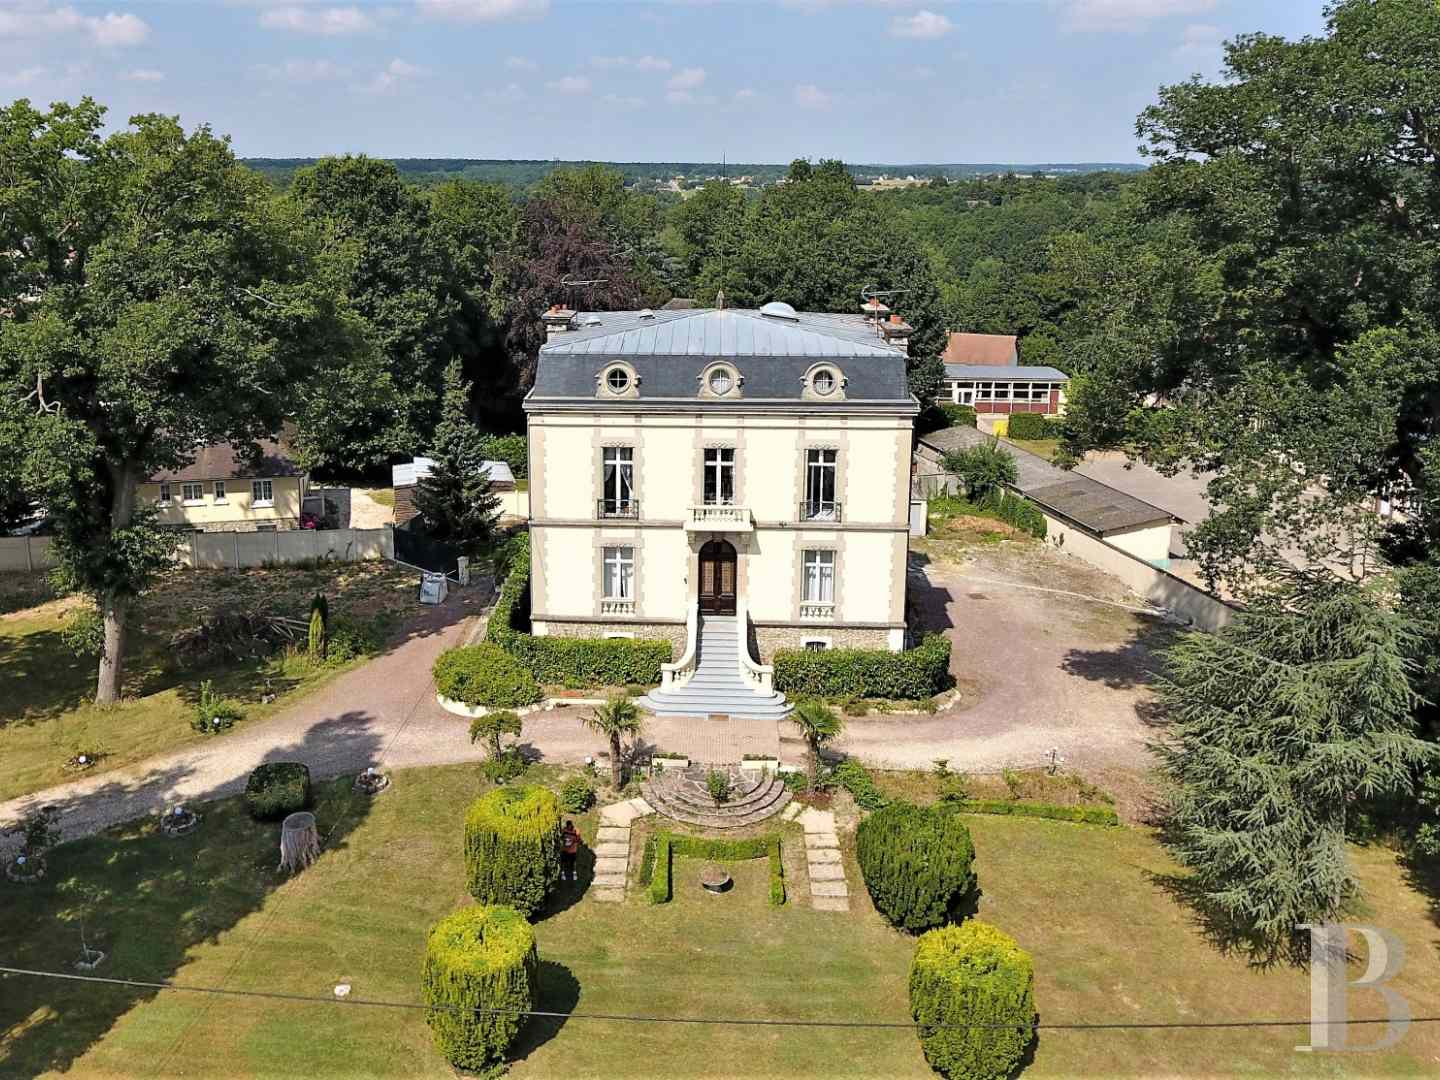 property for sale France upper normandy residences mansion - 10 zoom